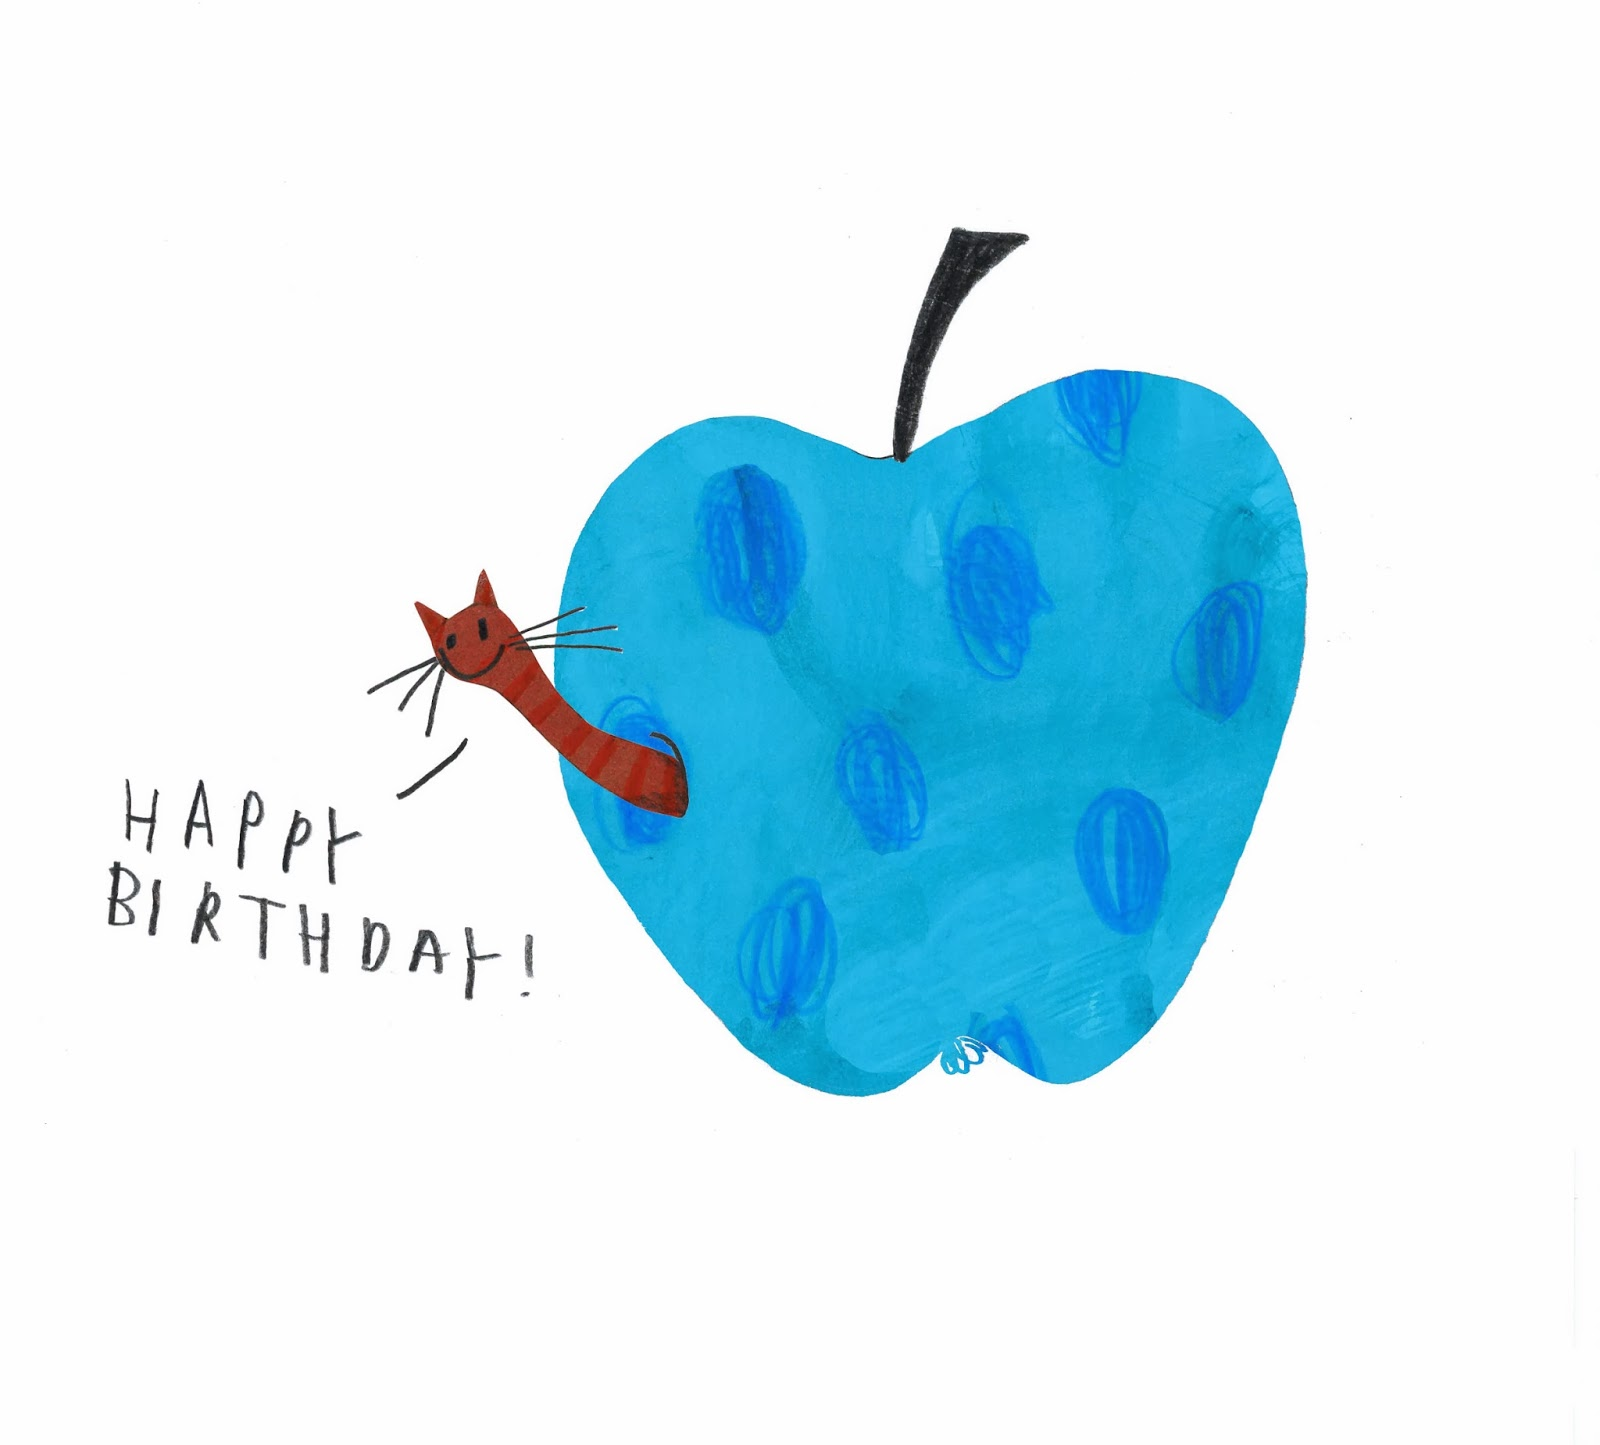 Image result for happy birthday apple images